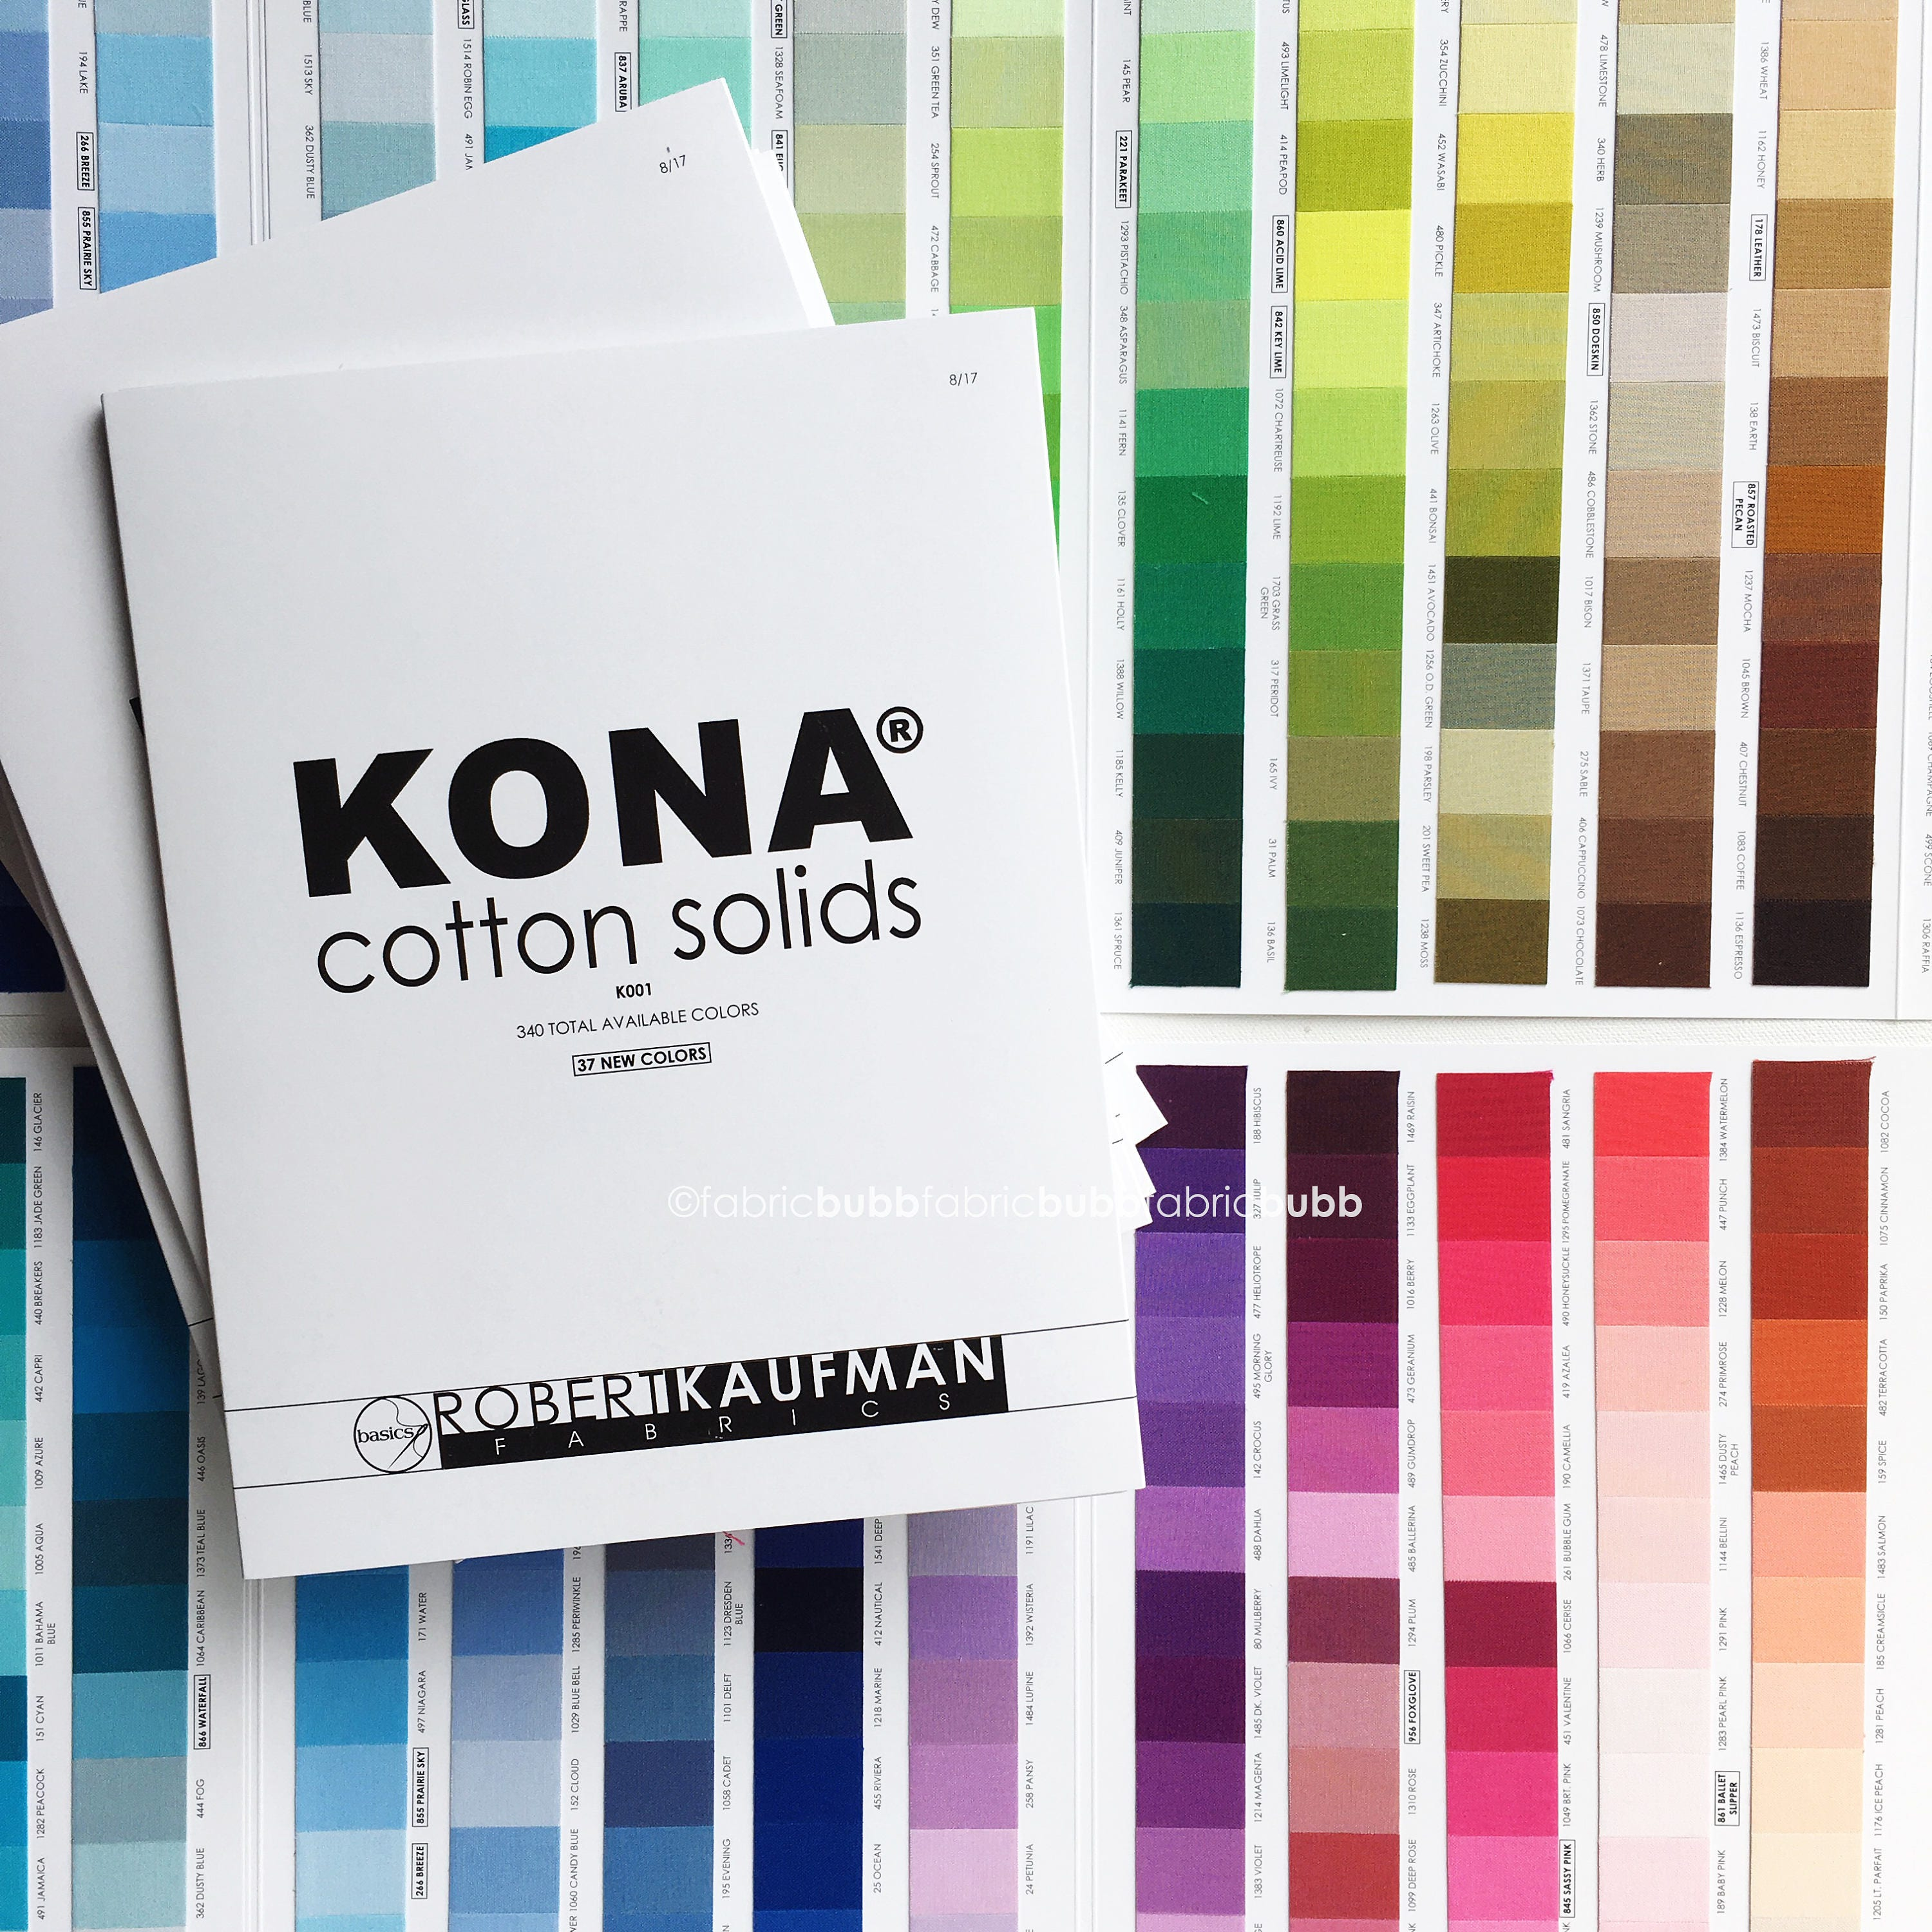 Kona color card 340 colors released 2017 robert kaufman fabric 3500 nvjuhfo Images